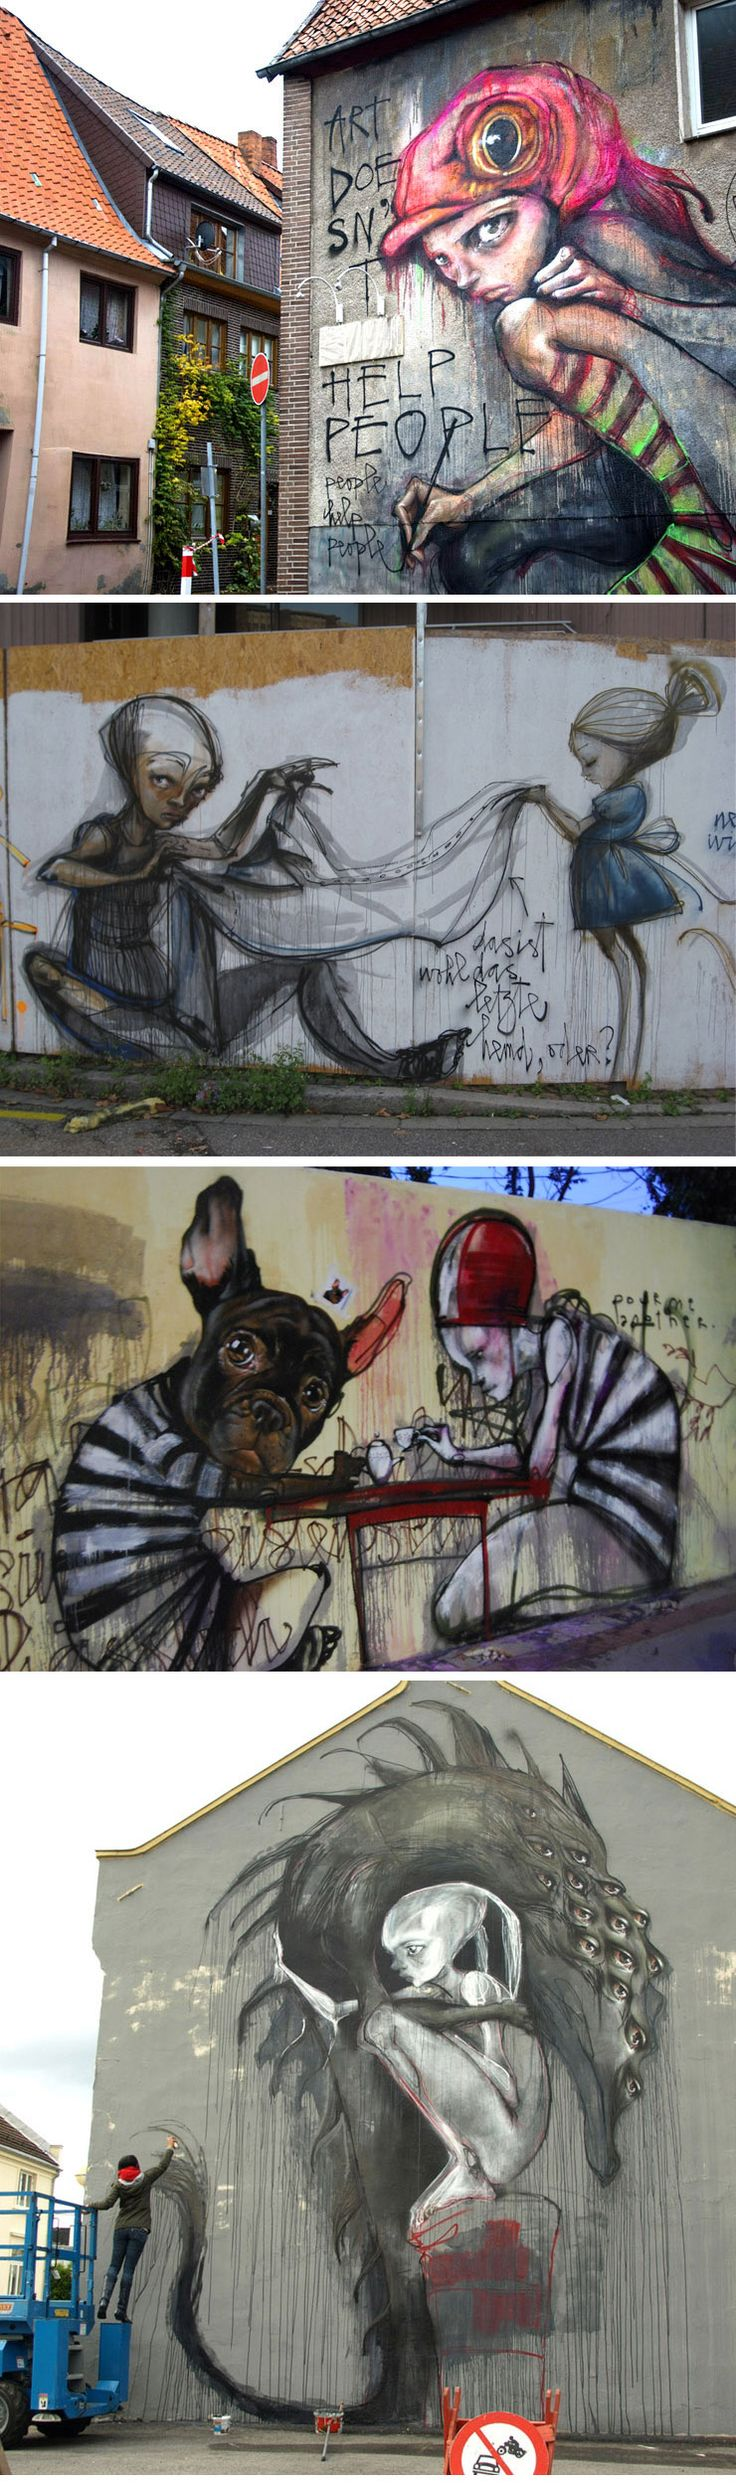 Street Art by Herakut ~ I love the fresh look of this art, and the style of it really interesting.